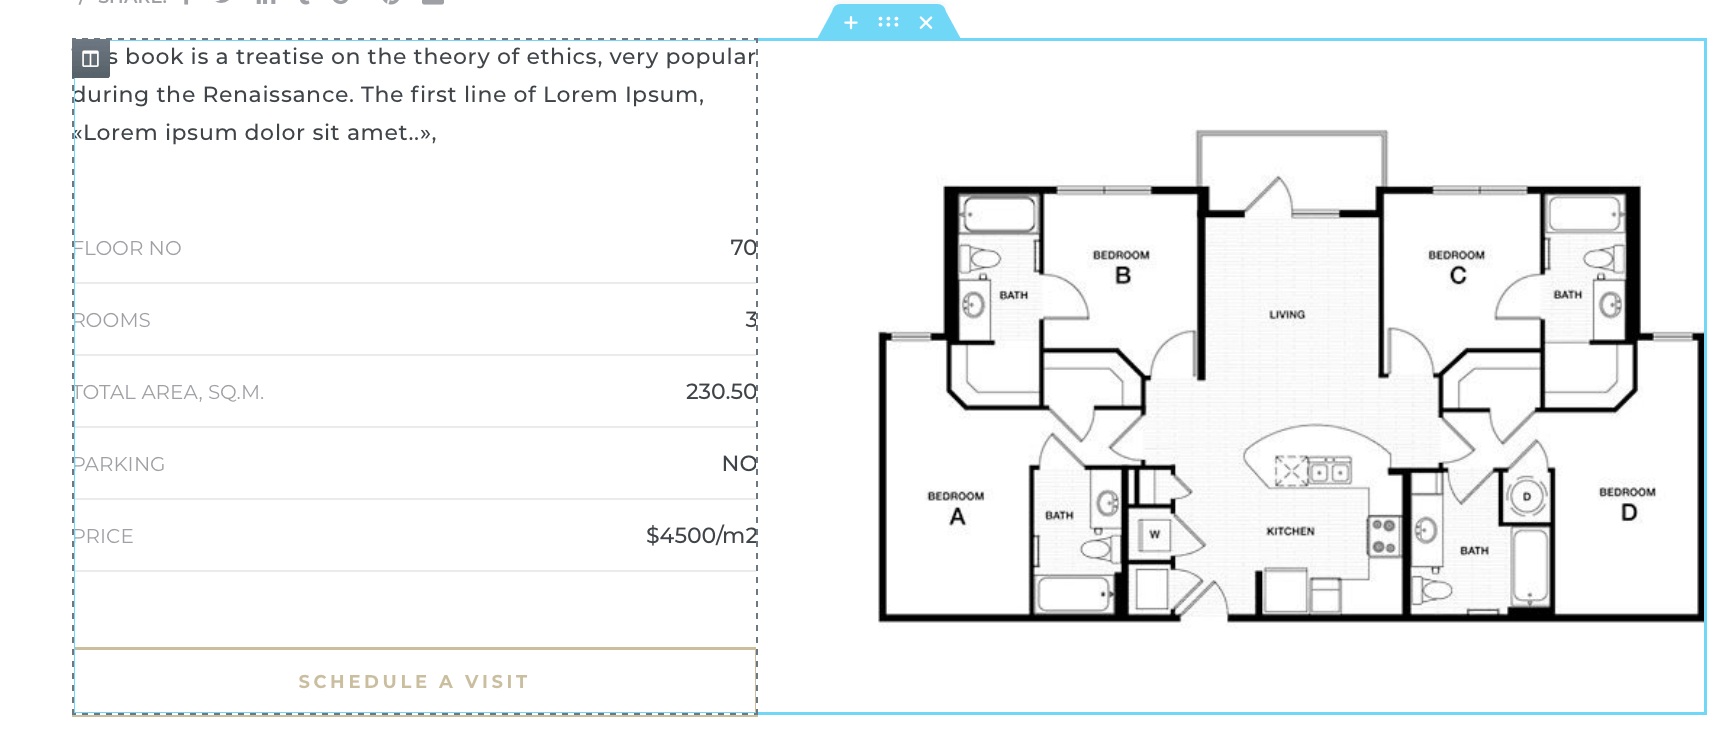 opal template apartment info.png